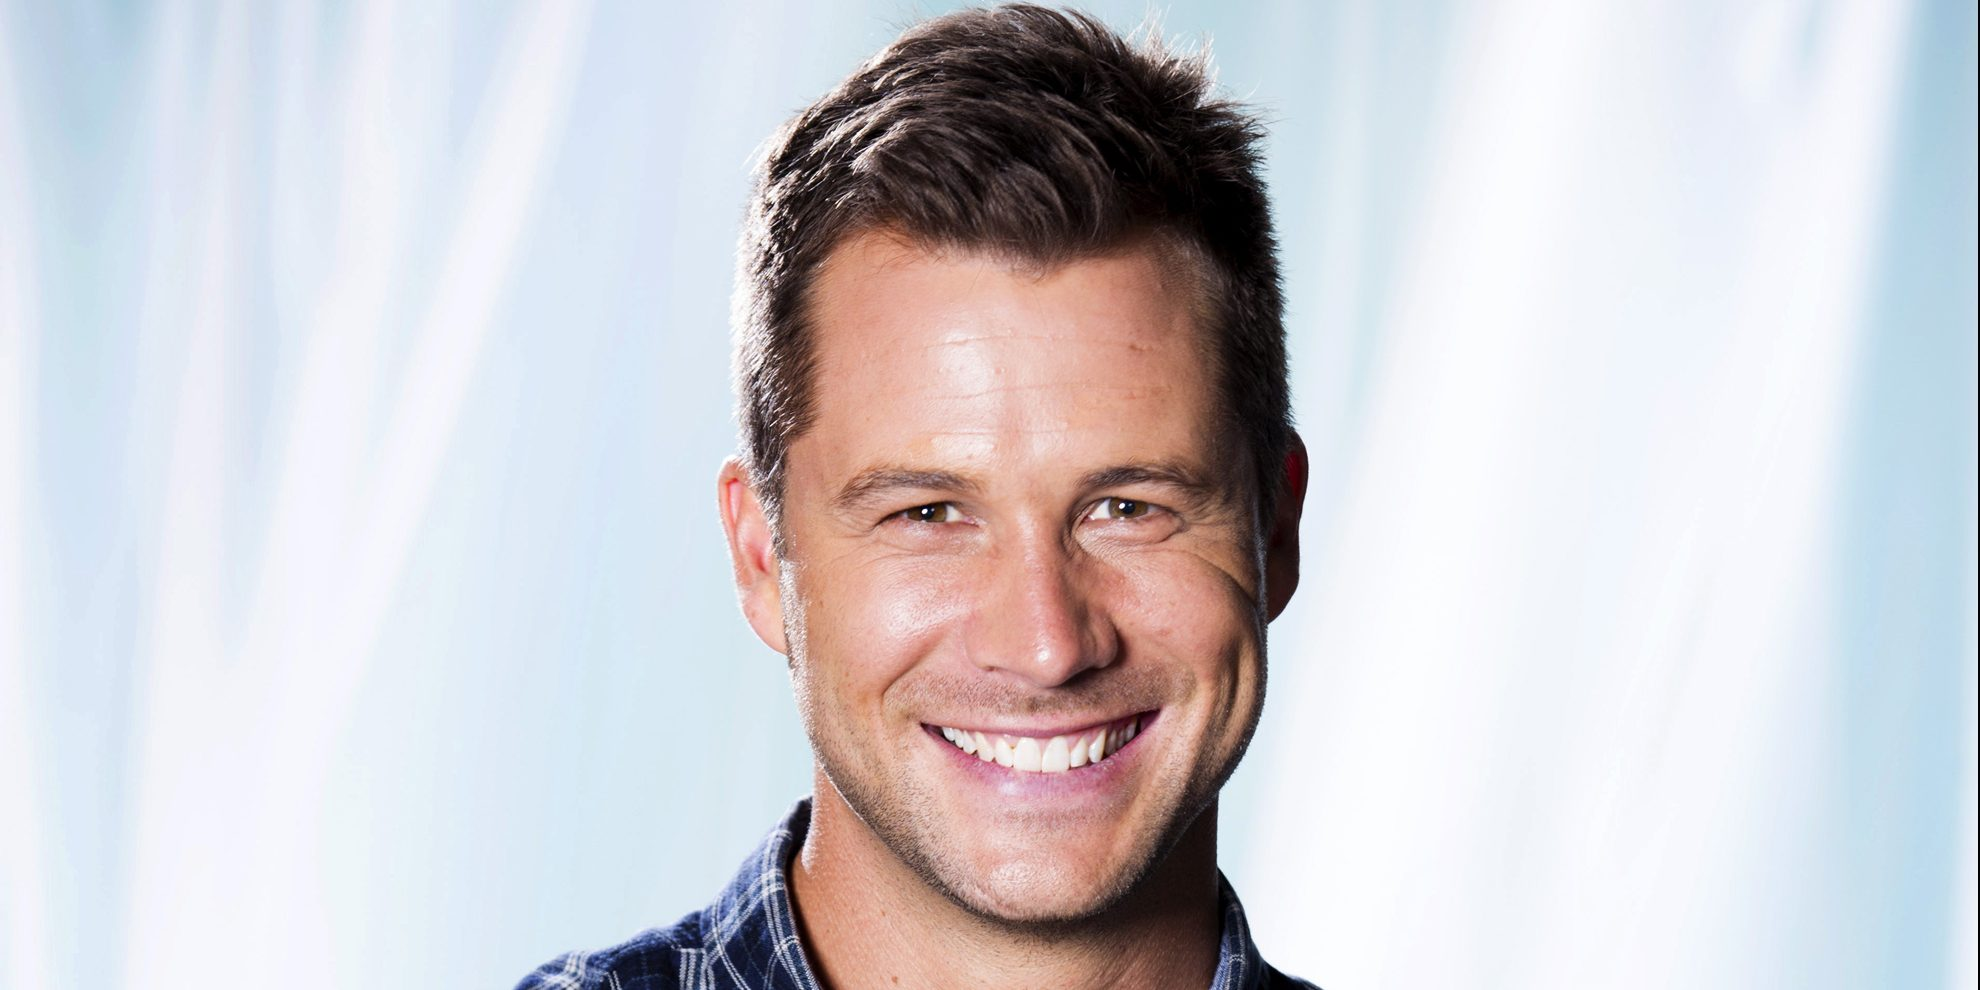 Scott McGregor plays Mark Brennan